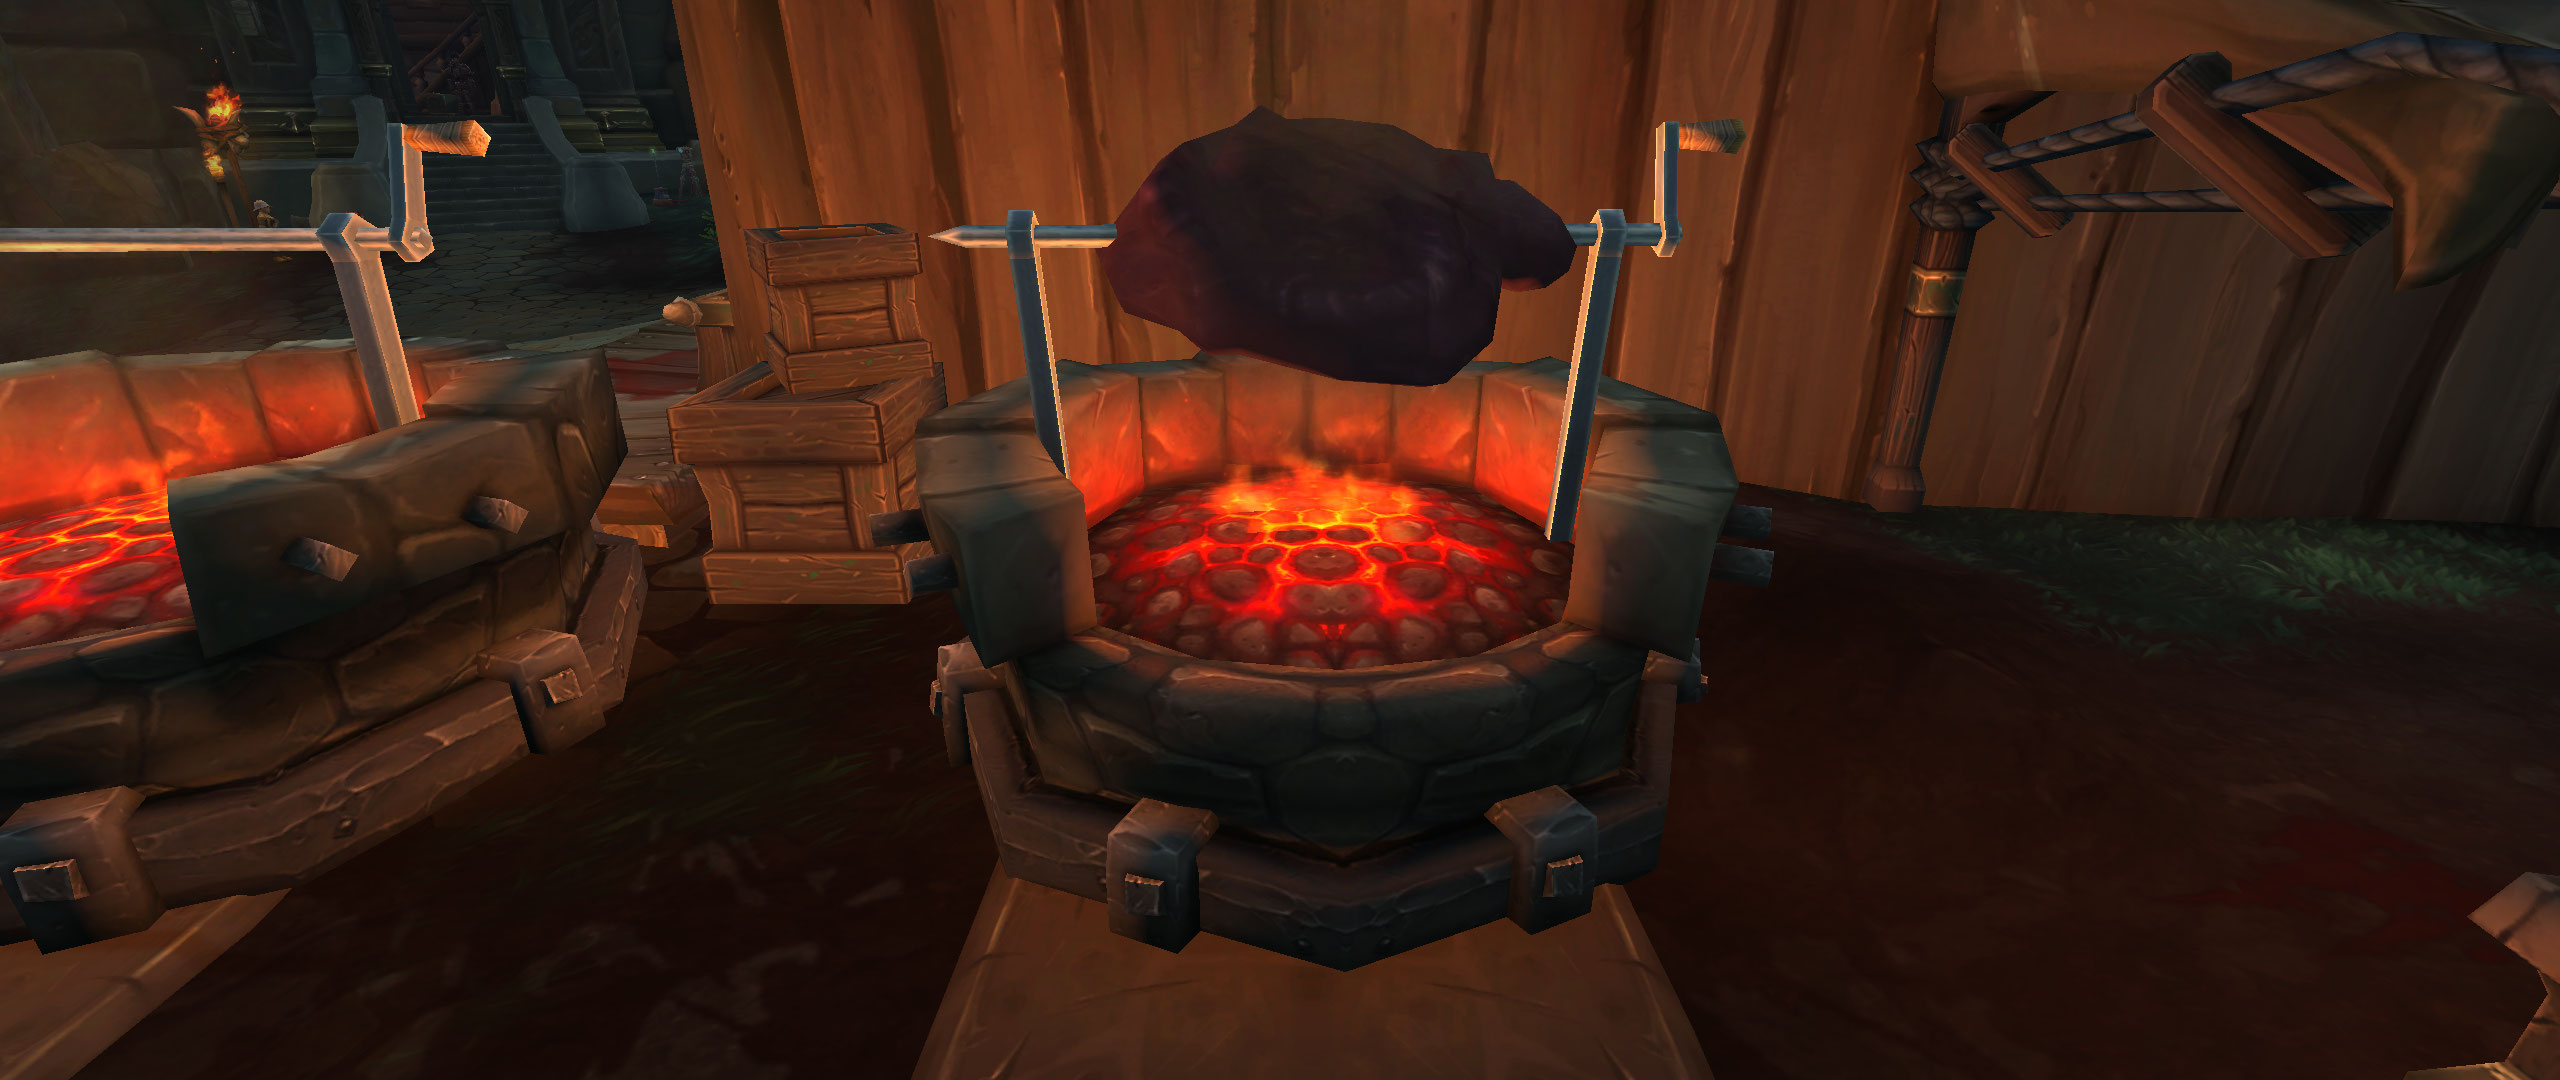 WoW Screenshot Berufe in Boralus Kochen 3